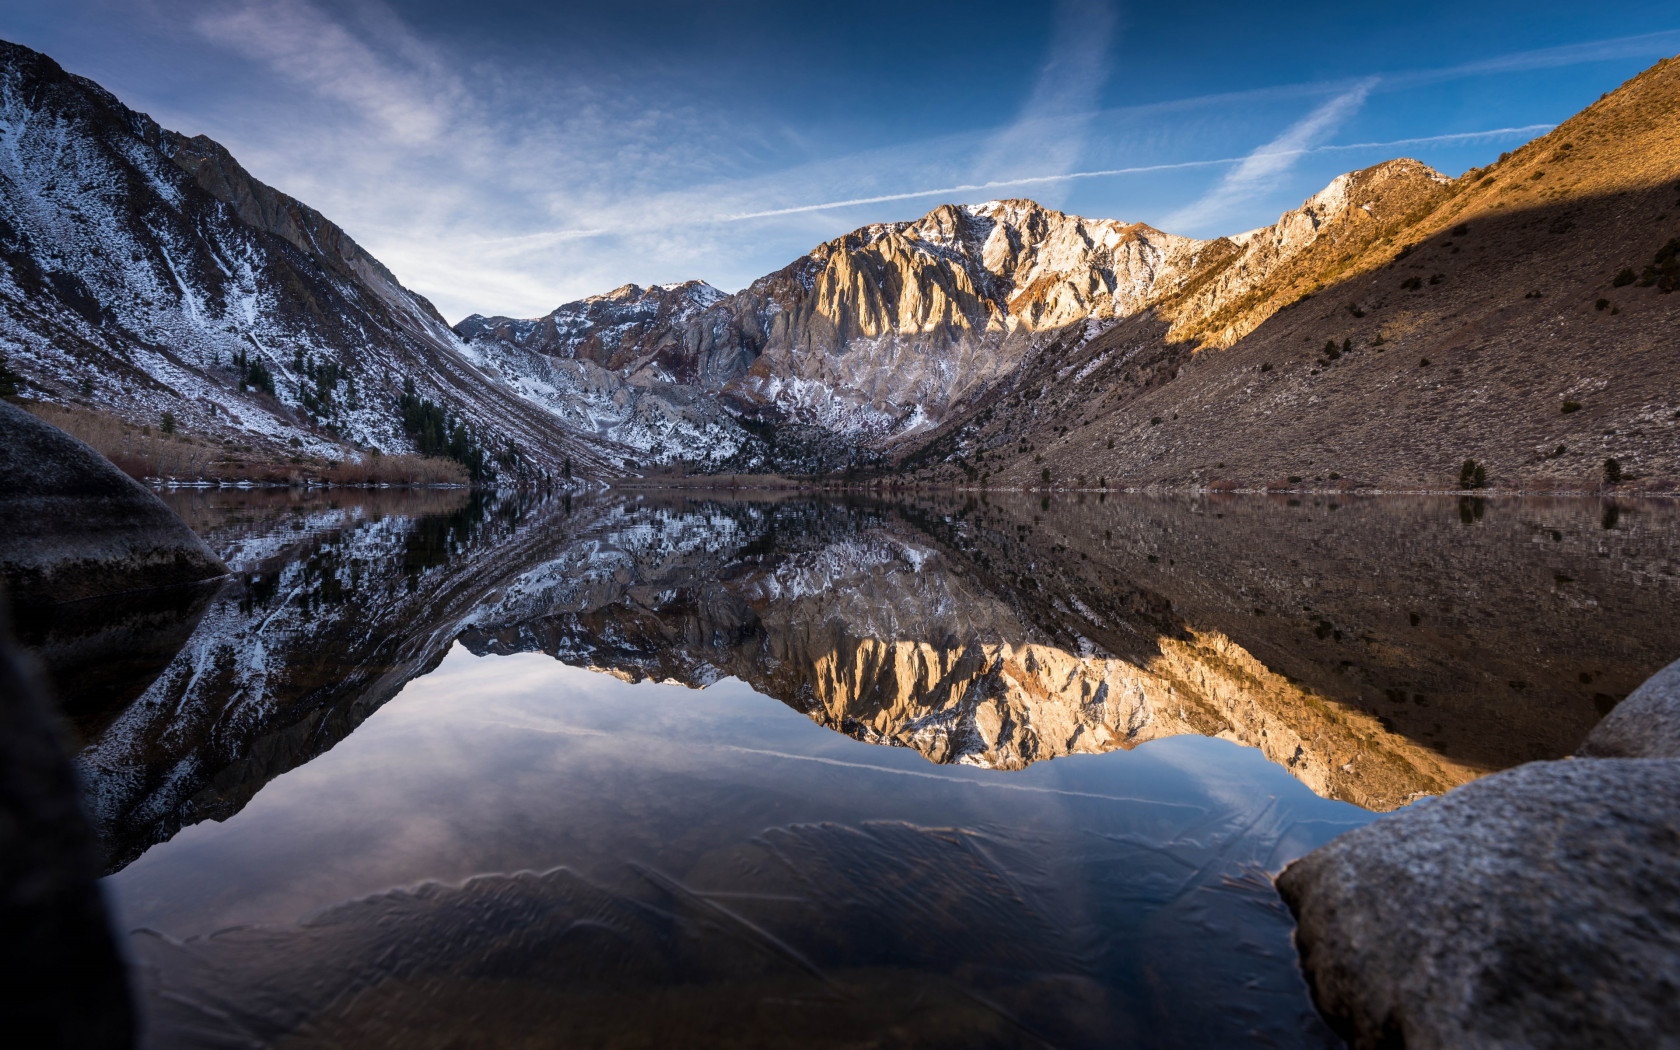 Convict lake began to freeze wallpaper 1680x1050